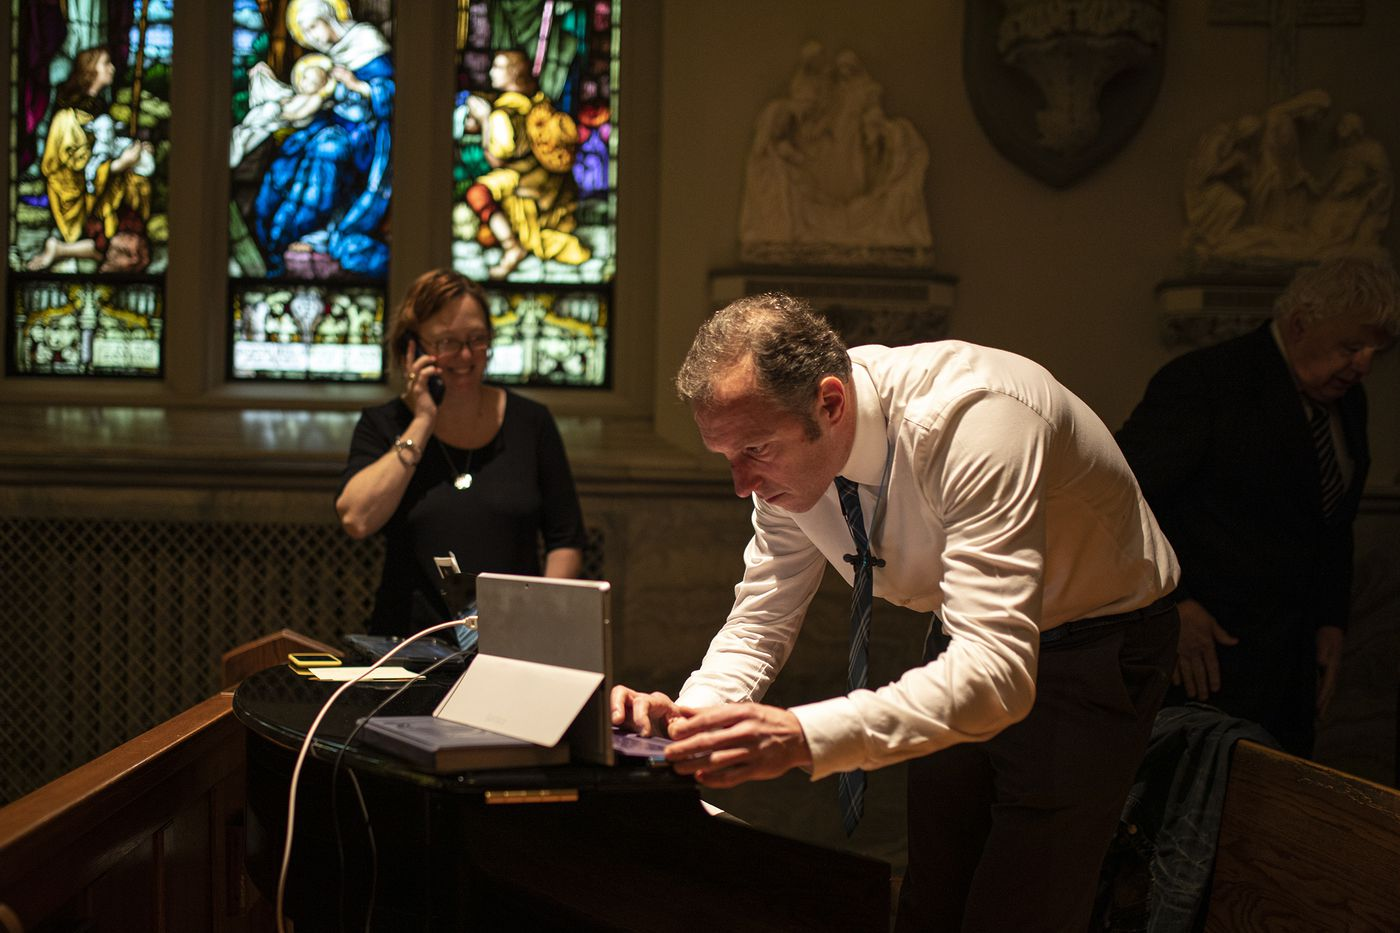 As Coronavirus Outbreak Continues, St. Margaret Church in Narberth Turns to Live-Streaming Funerals